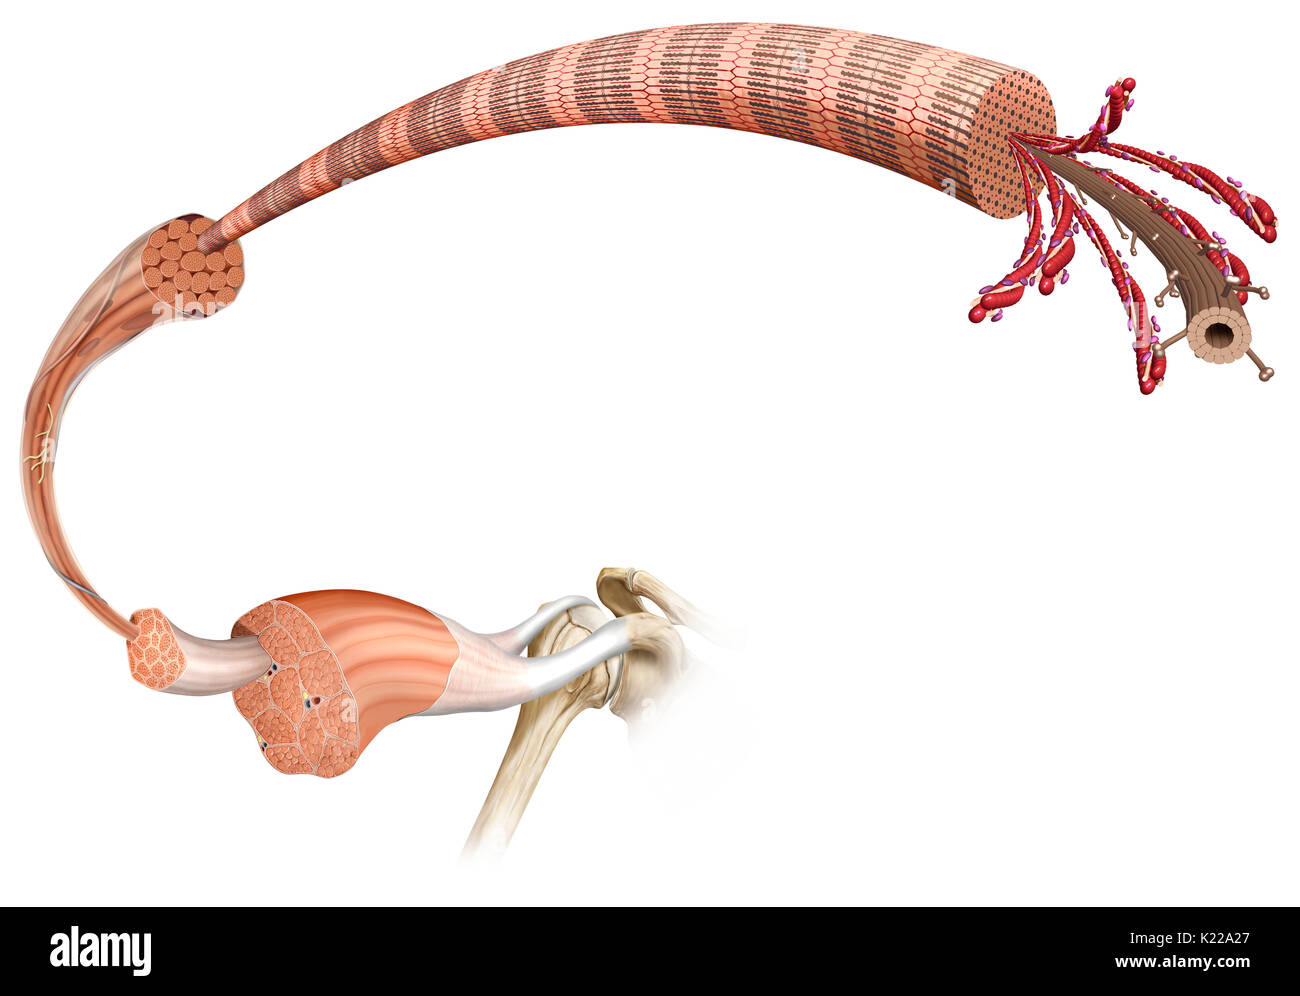 This image shows the structure of a skeletal muscle, revealing the muscle fibers bundle, the motor neuron, the muscle fiber and the myofibril. - Stock Image